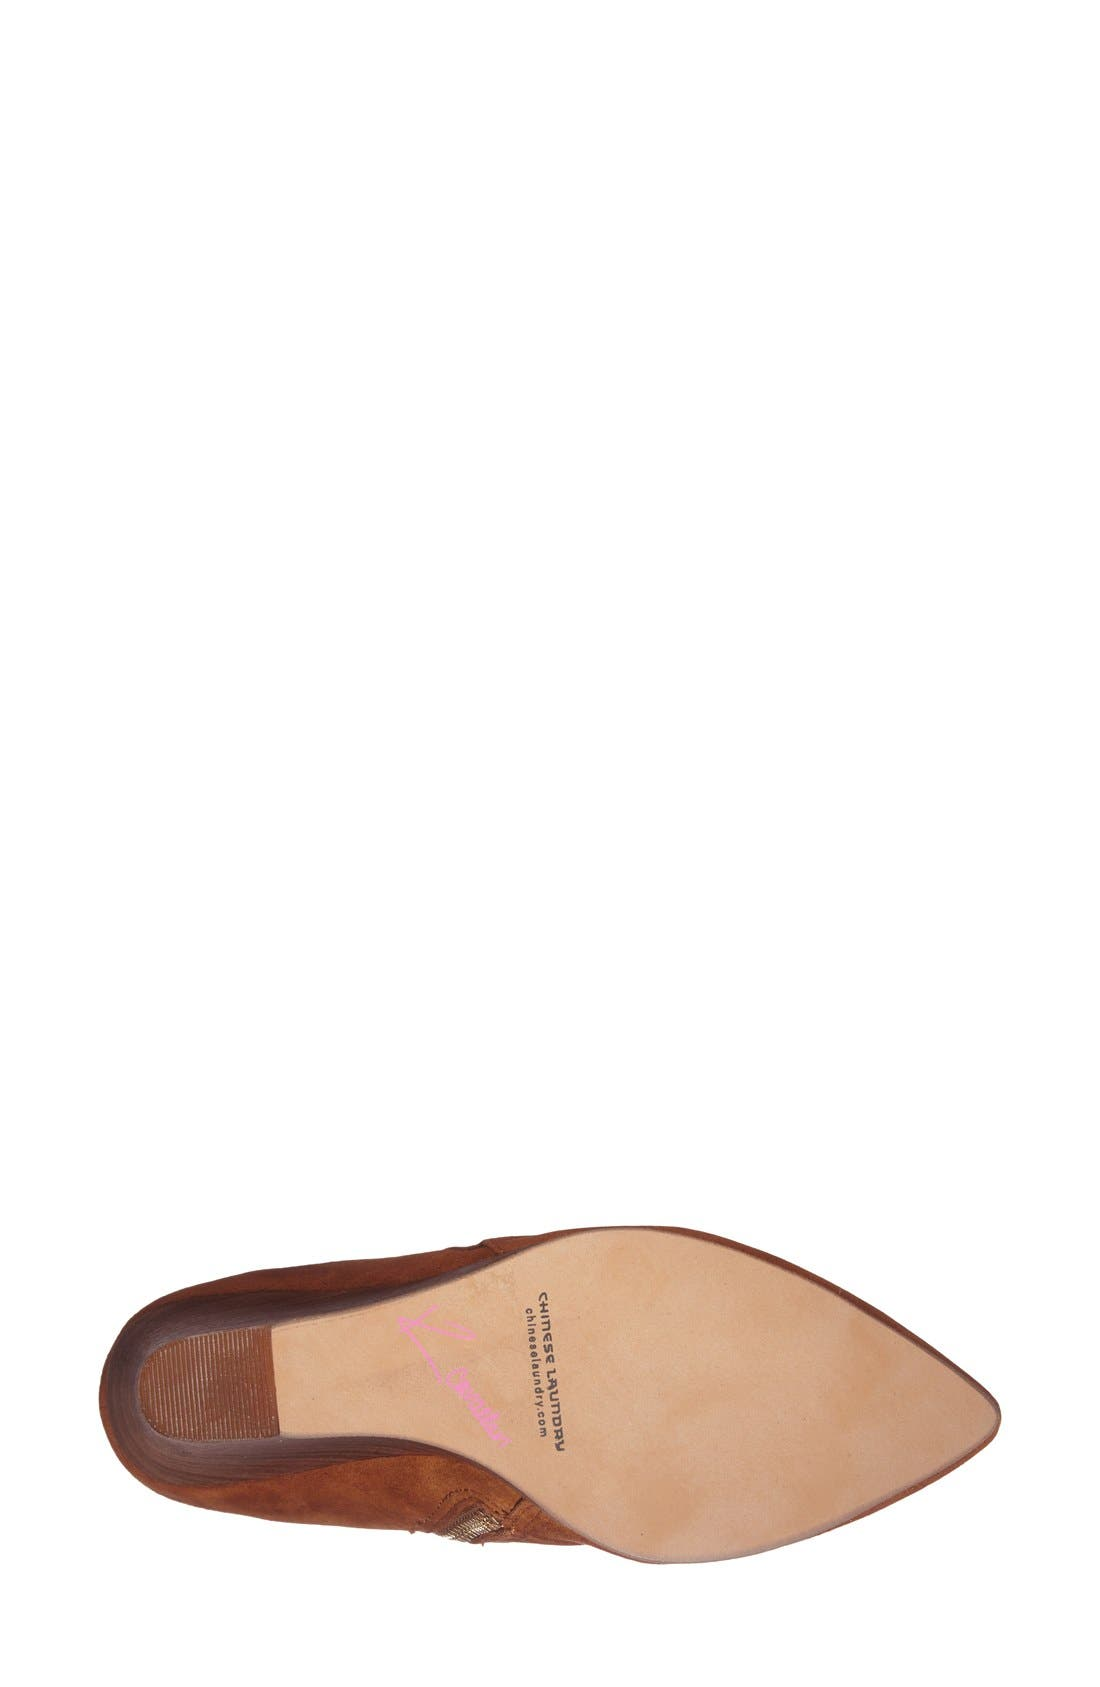 'Candyce' Wedge Bootie,                             Alternate thumbnail 4, color,                             Ginger Suede